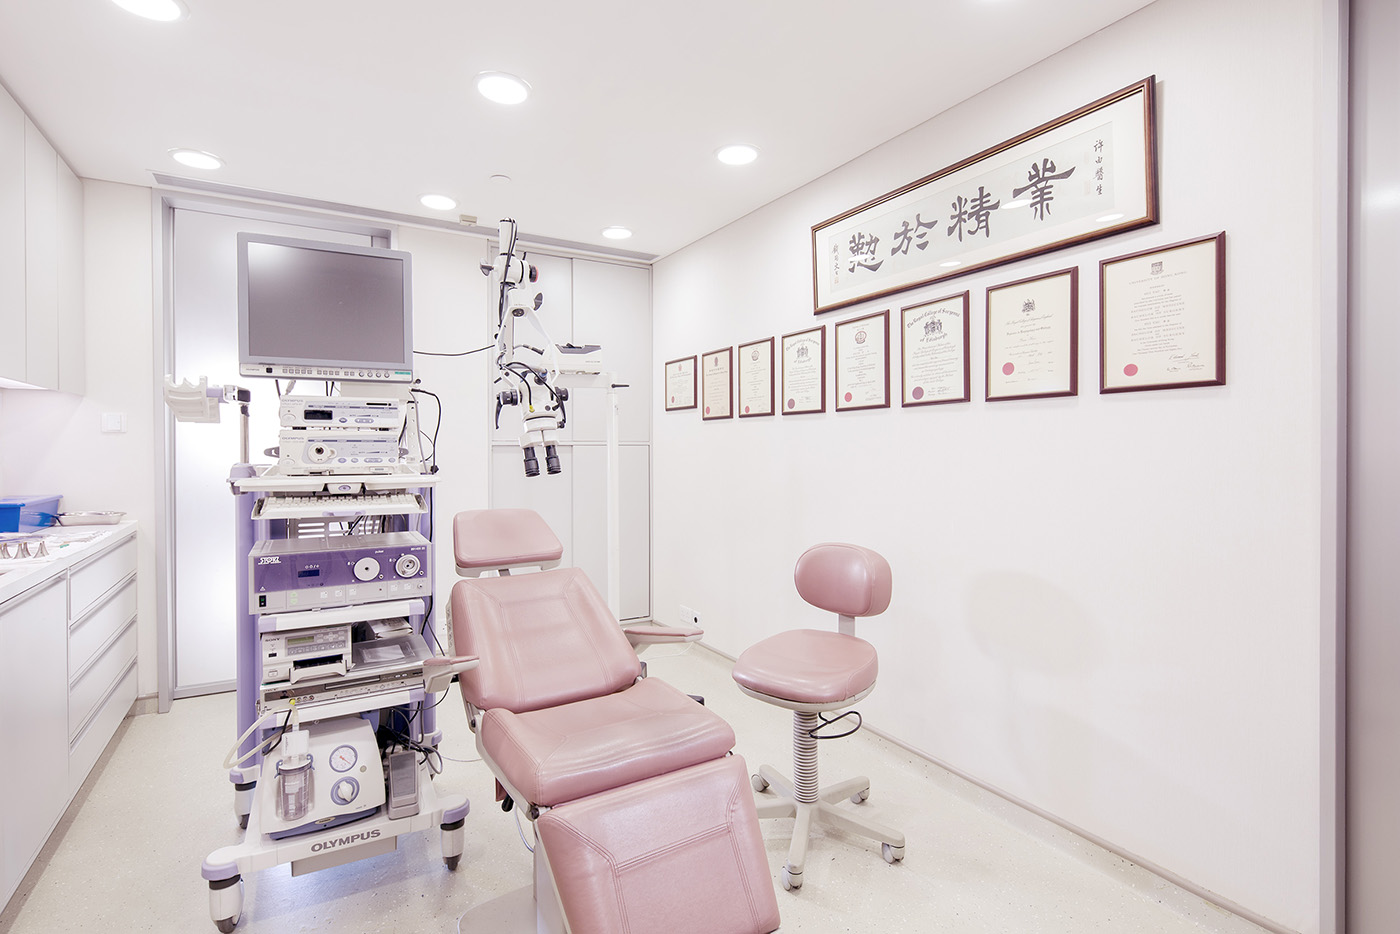 https://pedderclinic.hk/sc/wp-content/uploads/sites/3/facilities-06.jpg